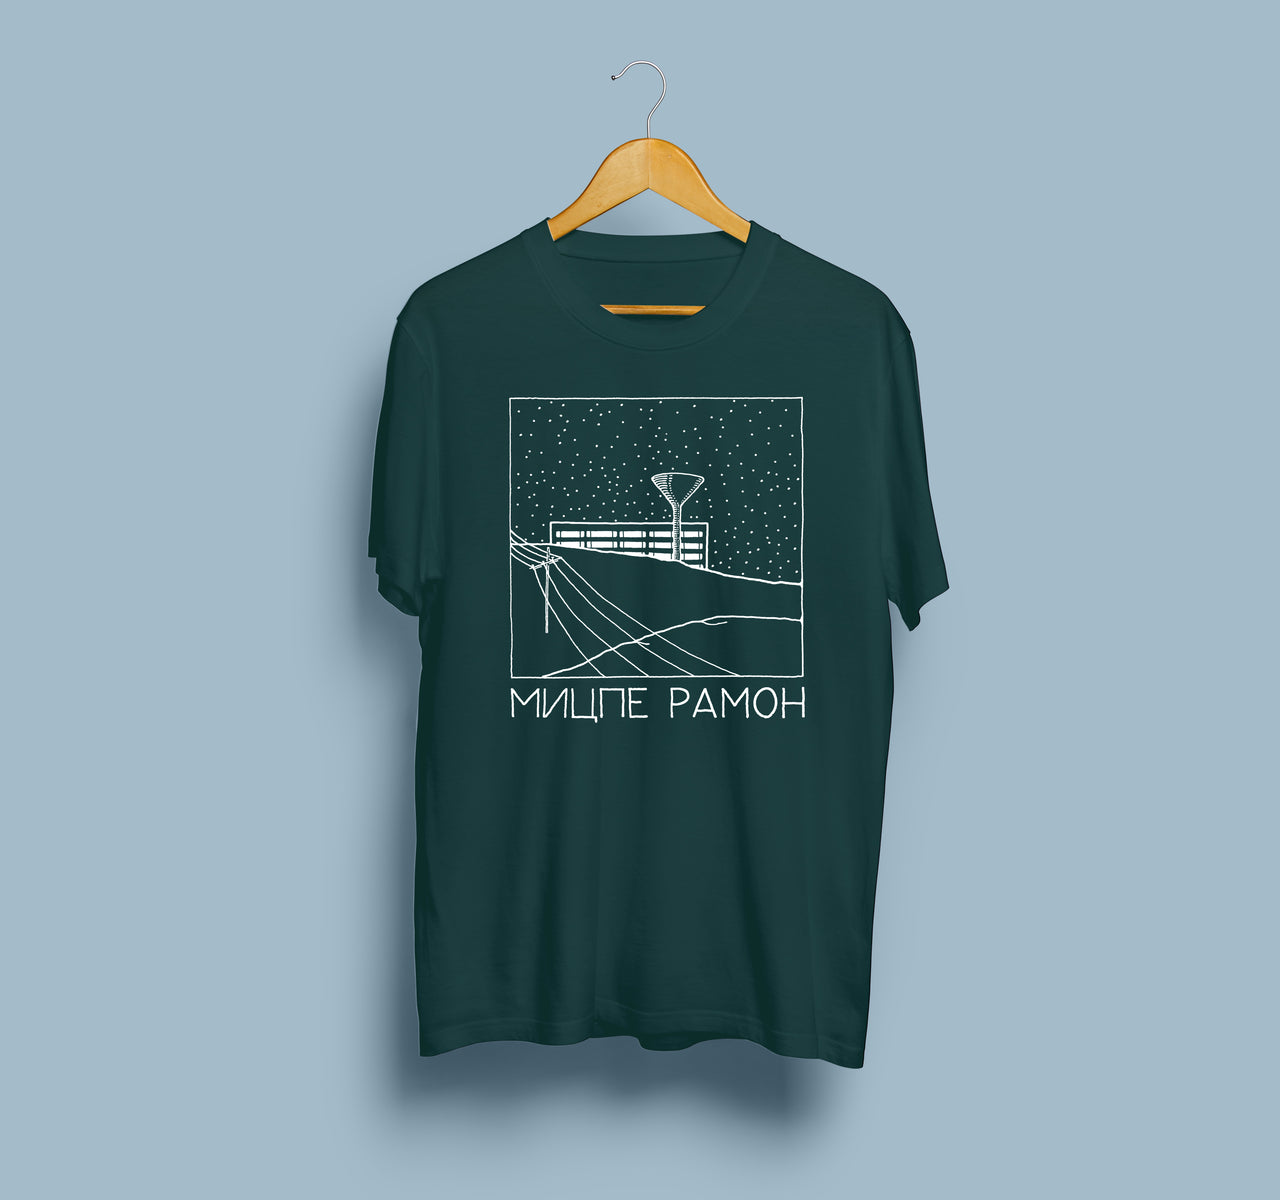 Mitzpe Ramon by Kiril Cherikover Green Unisex T-Shirt